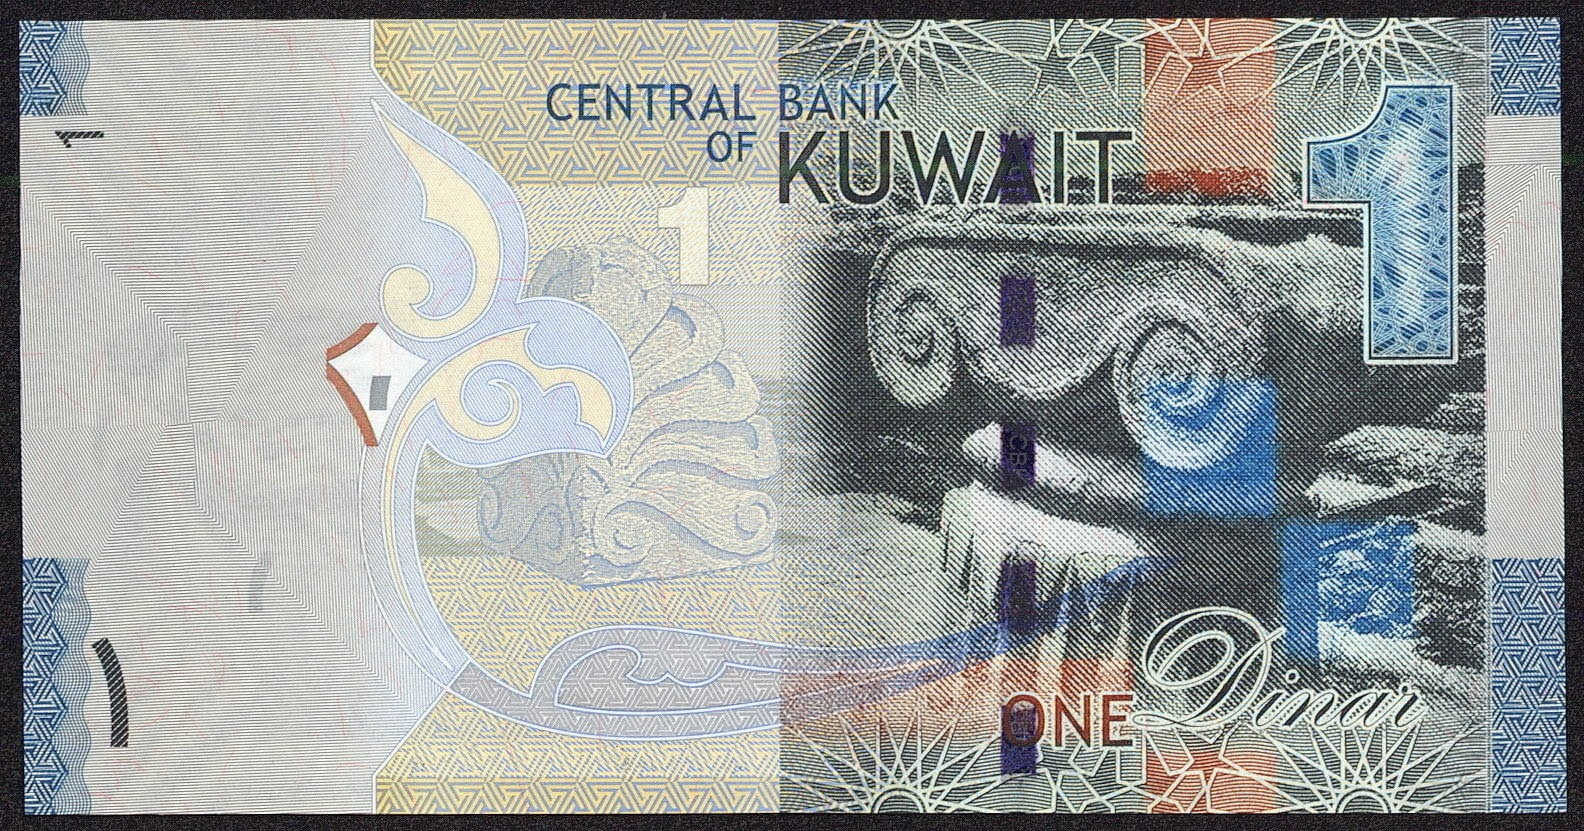 Kuwait money currency 1 Dinar banknote 2014